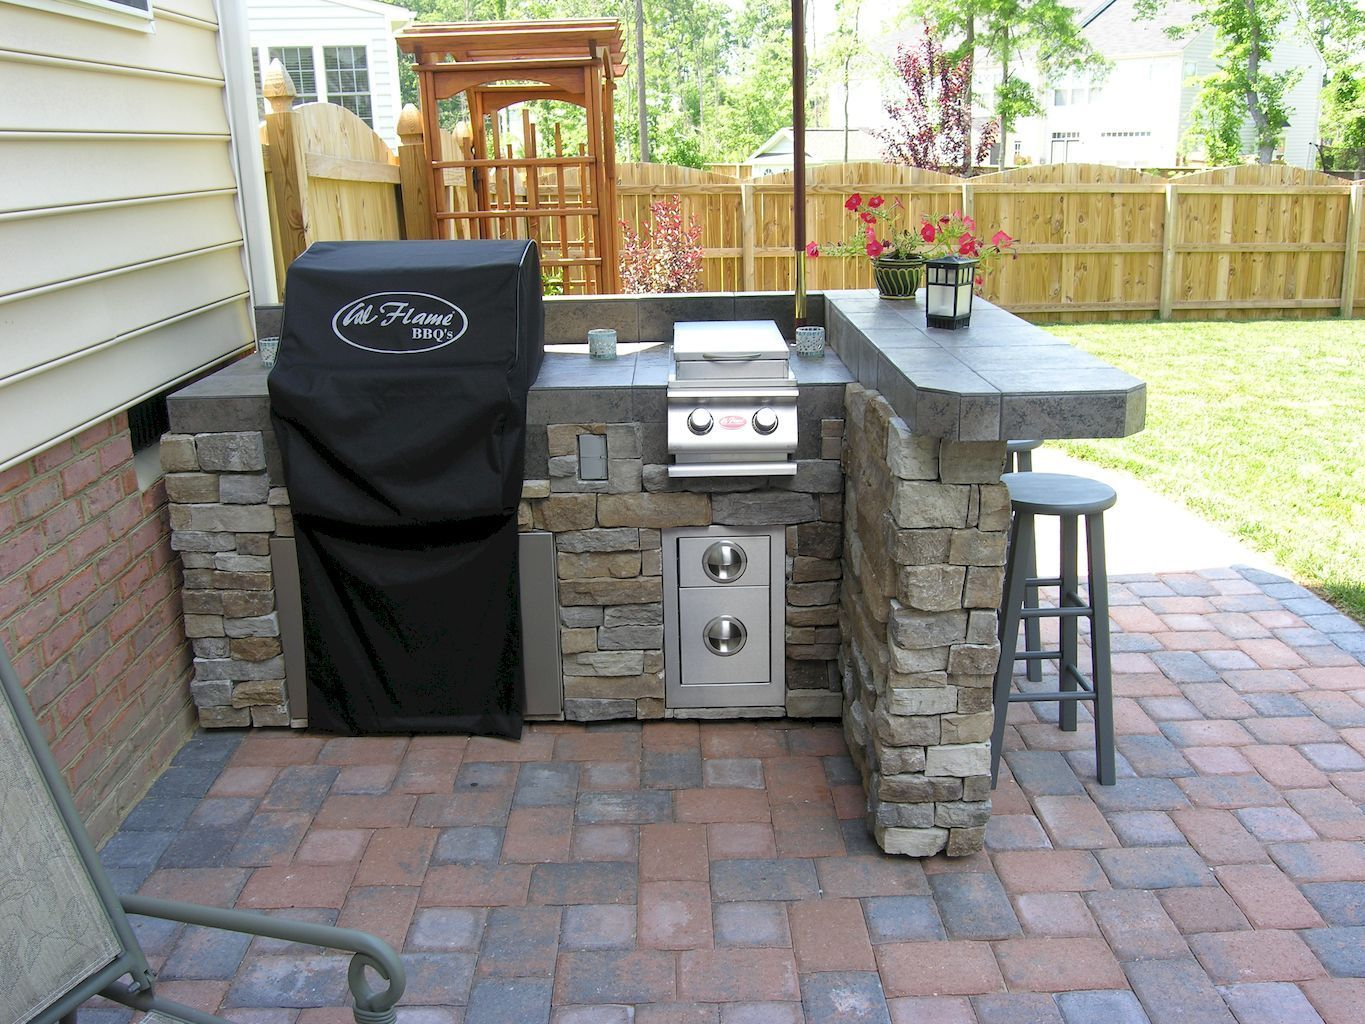 Adorable 60 Amazing Diy Outdoor Kitchen Ideas On A Budget Https Roomadness Com 2017 09 14 Small Outdoor Kitchens Outdoor Kitchen Decor Outdoor Kitchen Plans